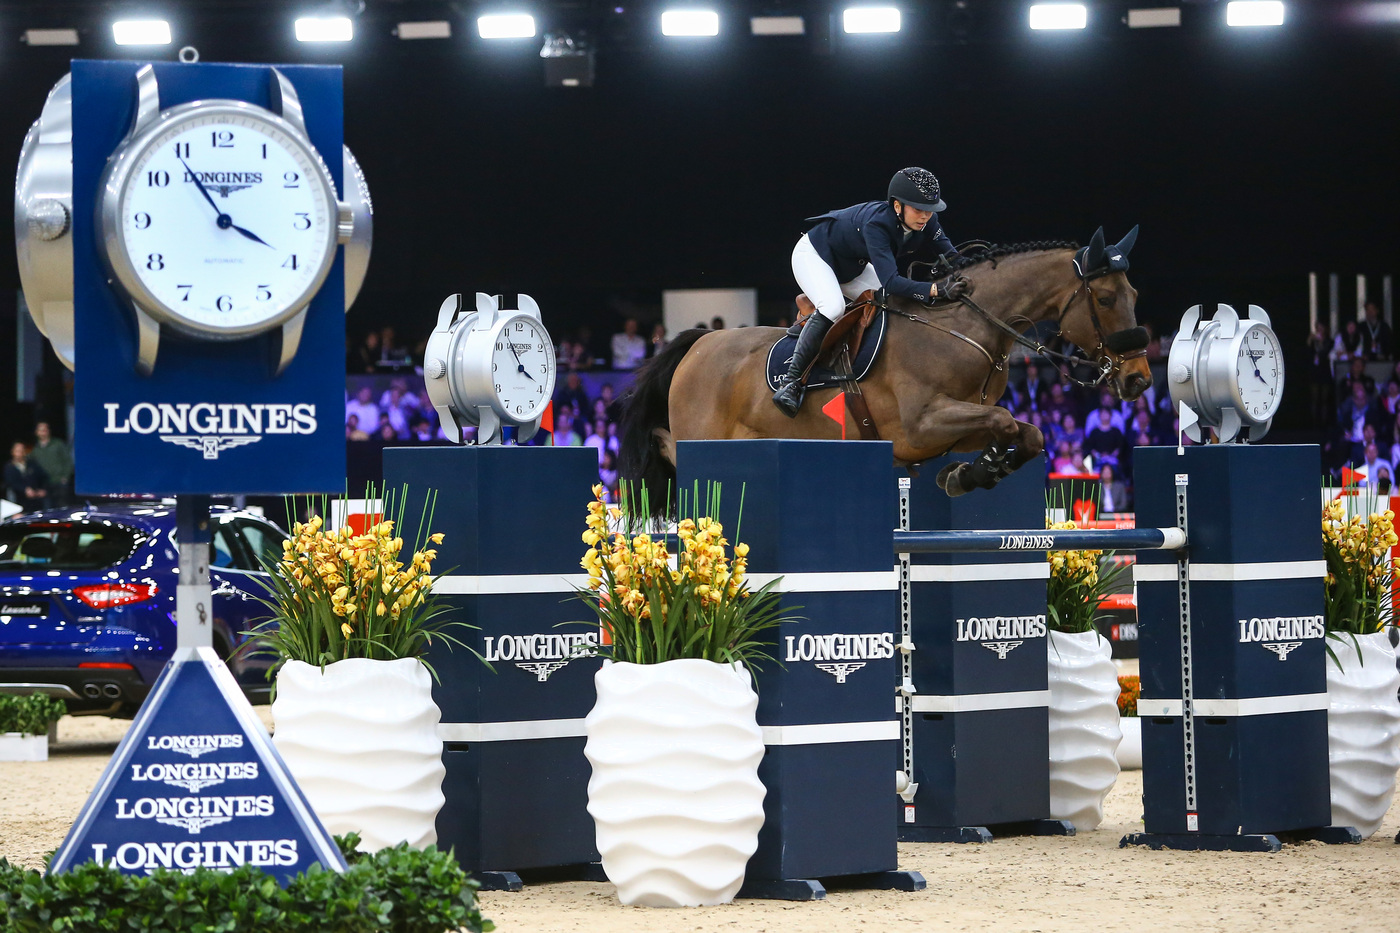 Longines Show Jumping Event: The 2019 Longines Masters of Hong Kong: a perfect mix of sports achievements and glamour  10